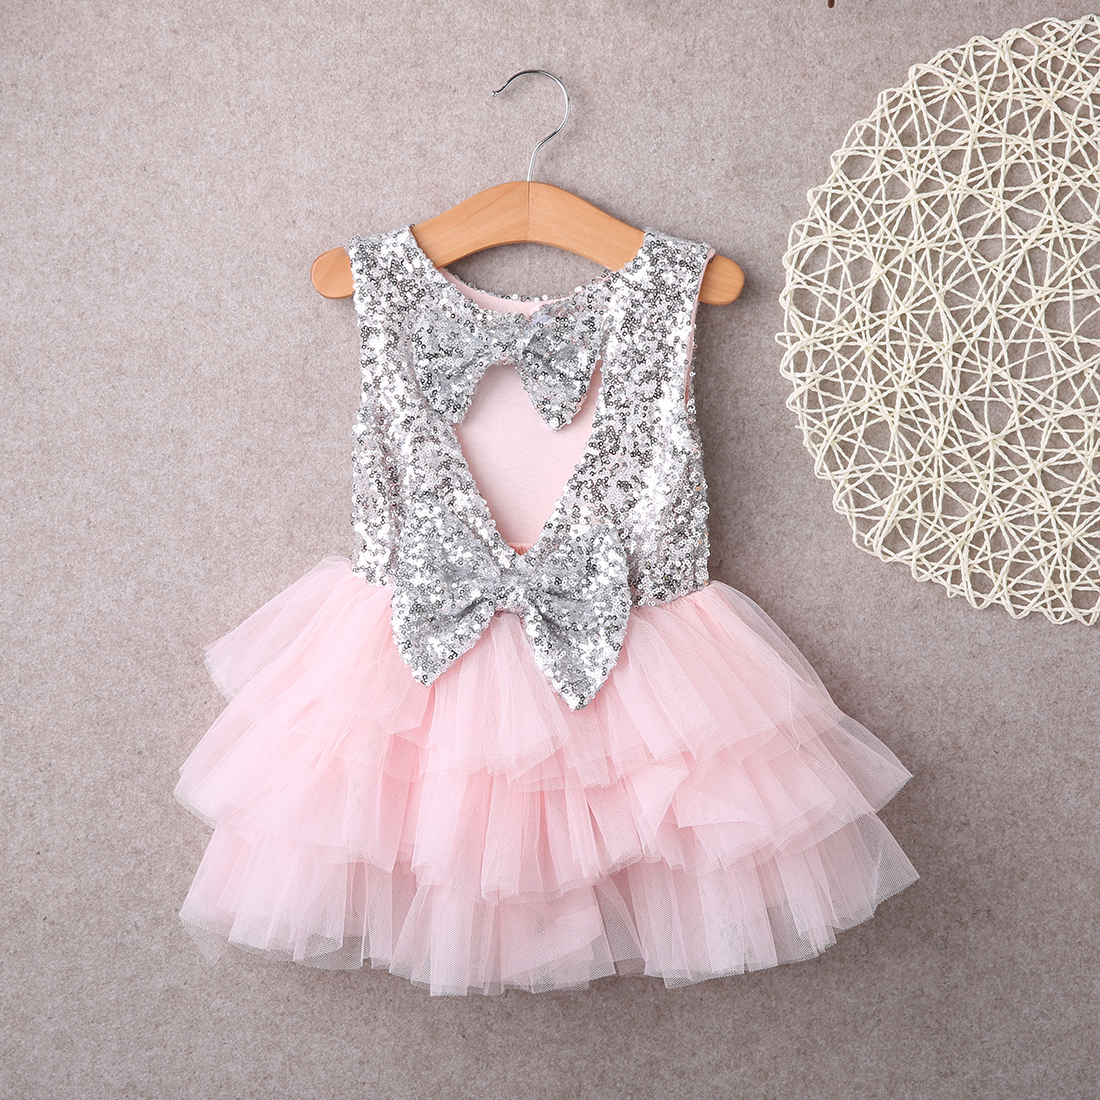 aba41cb11ca2 Detail Feedback Questions about Baby Flower Girl Dress Sequin Bow ...